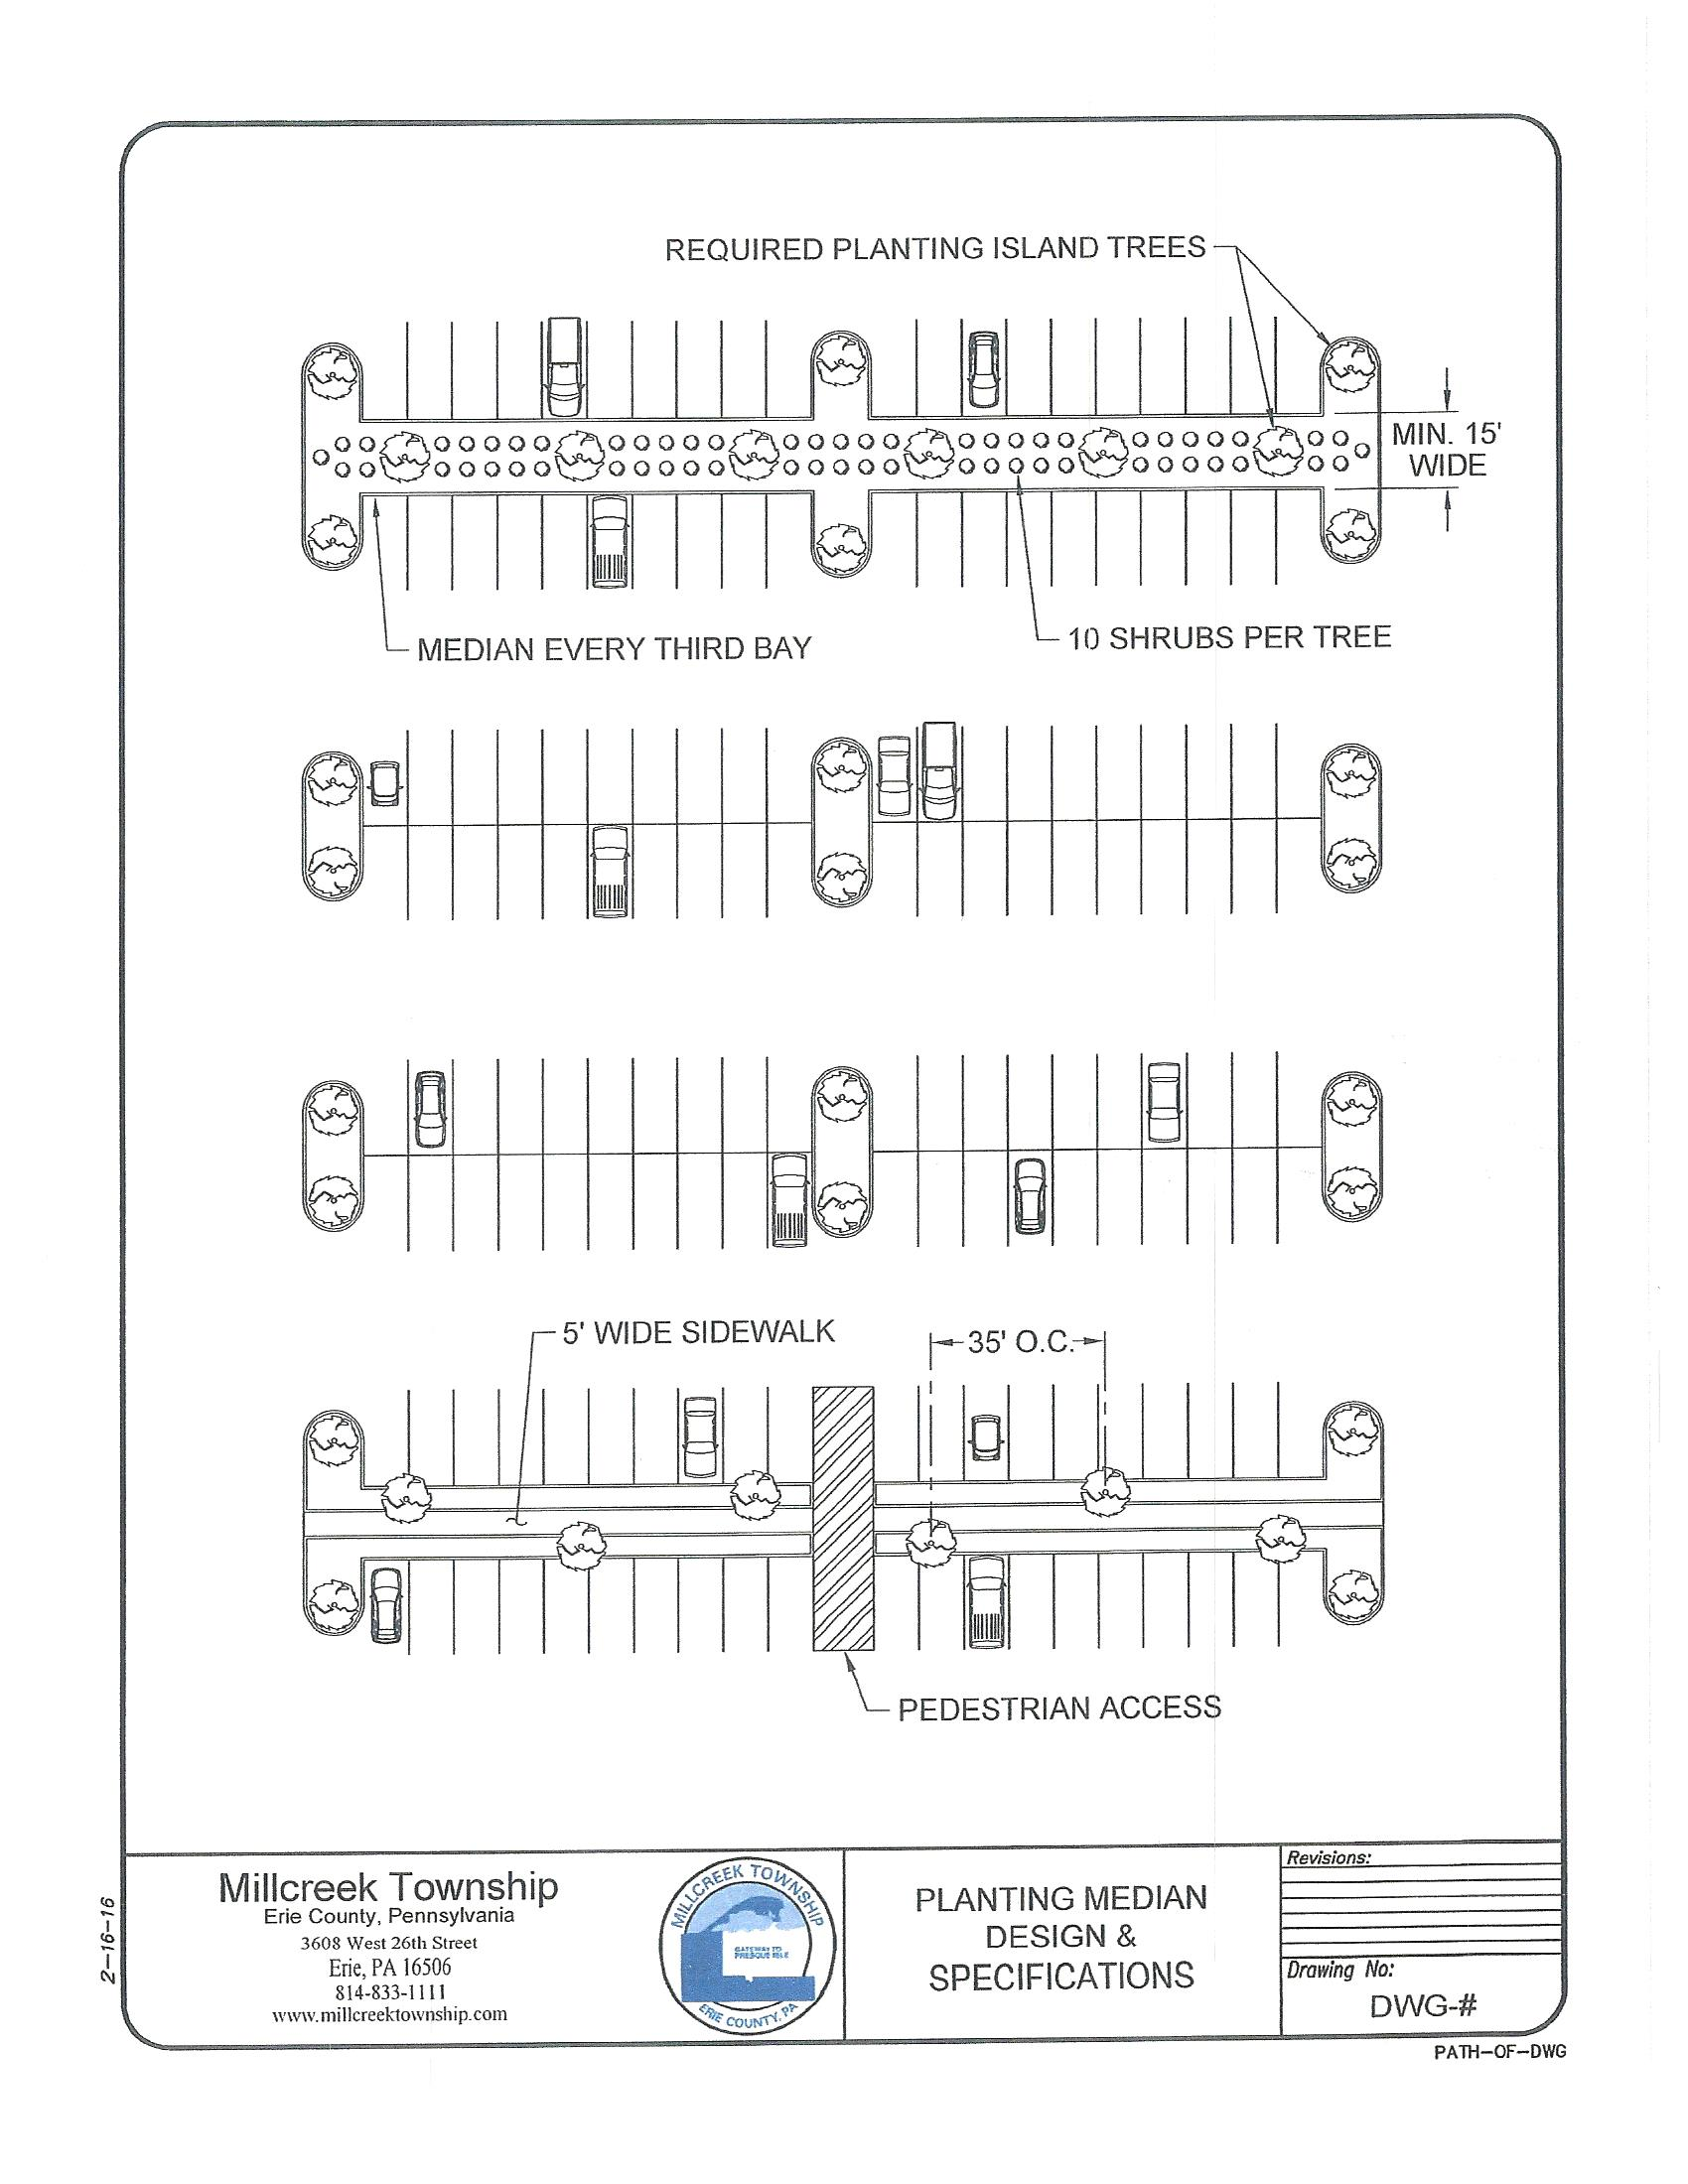 Planting median schematic